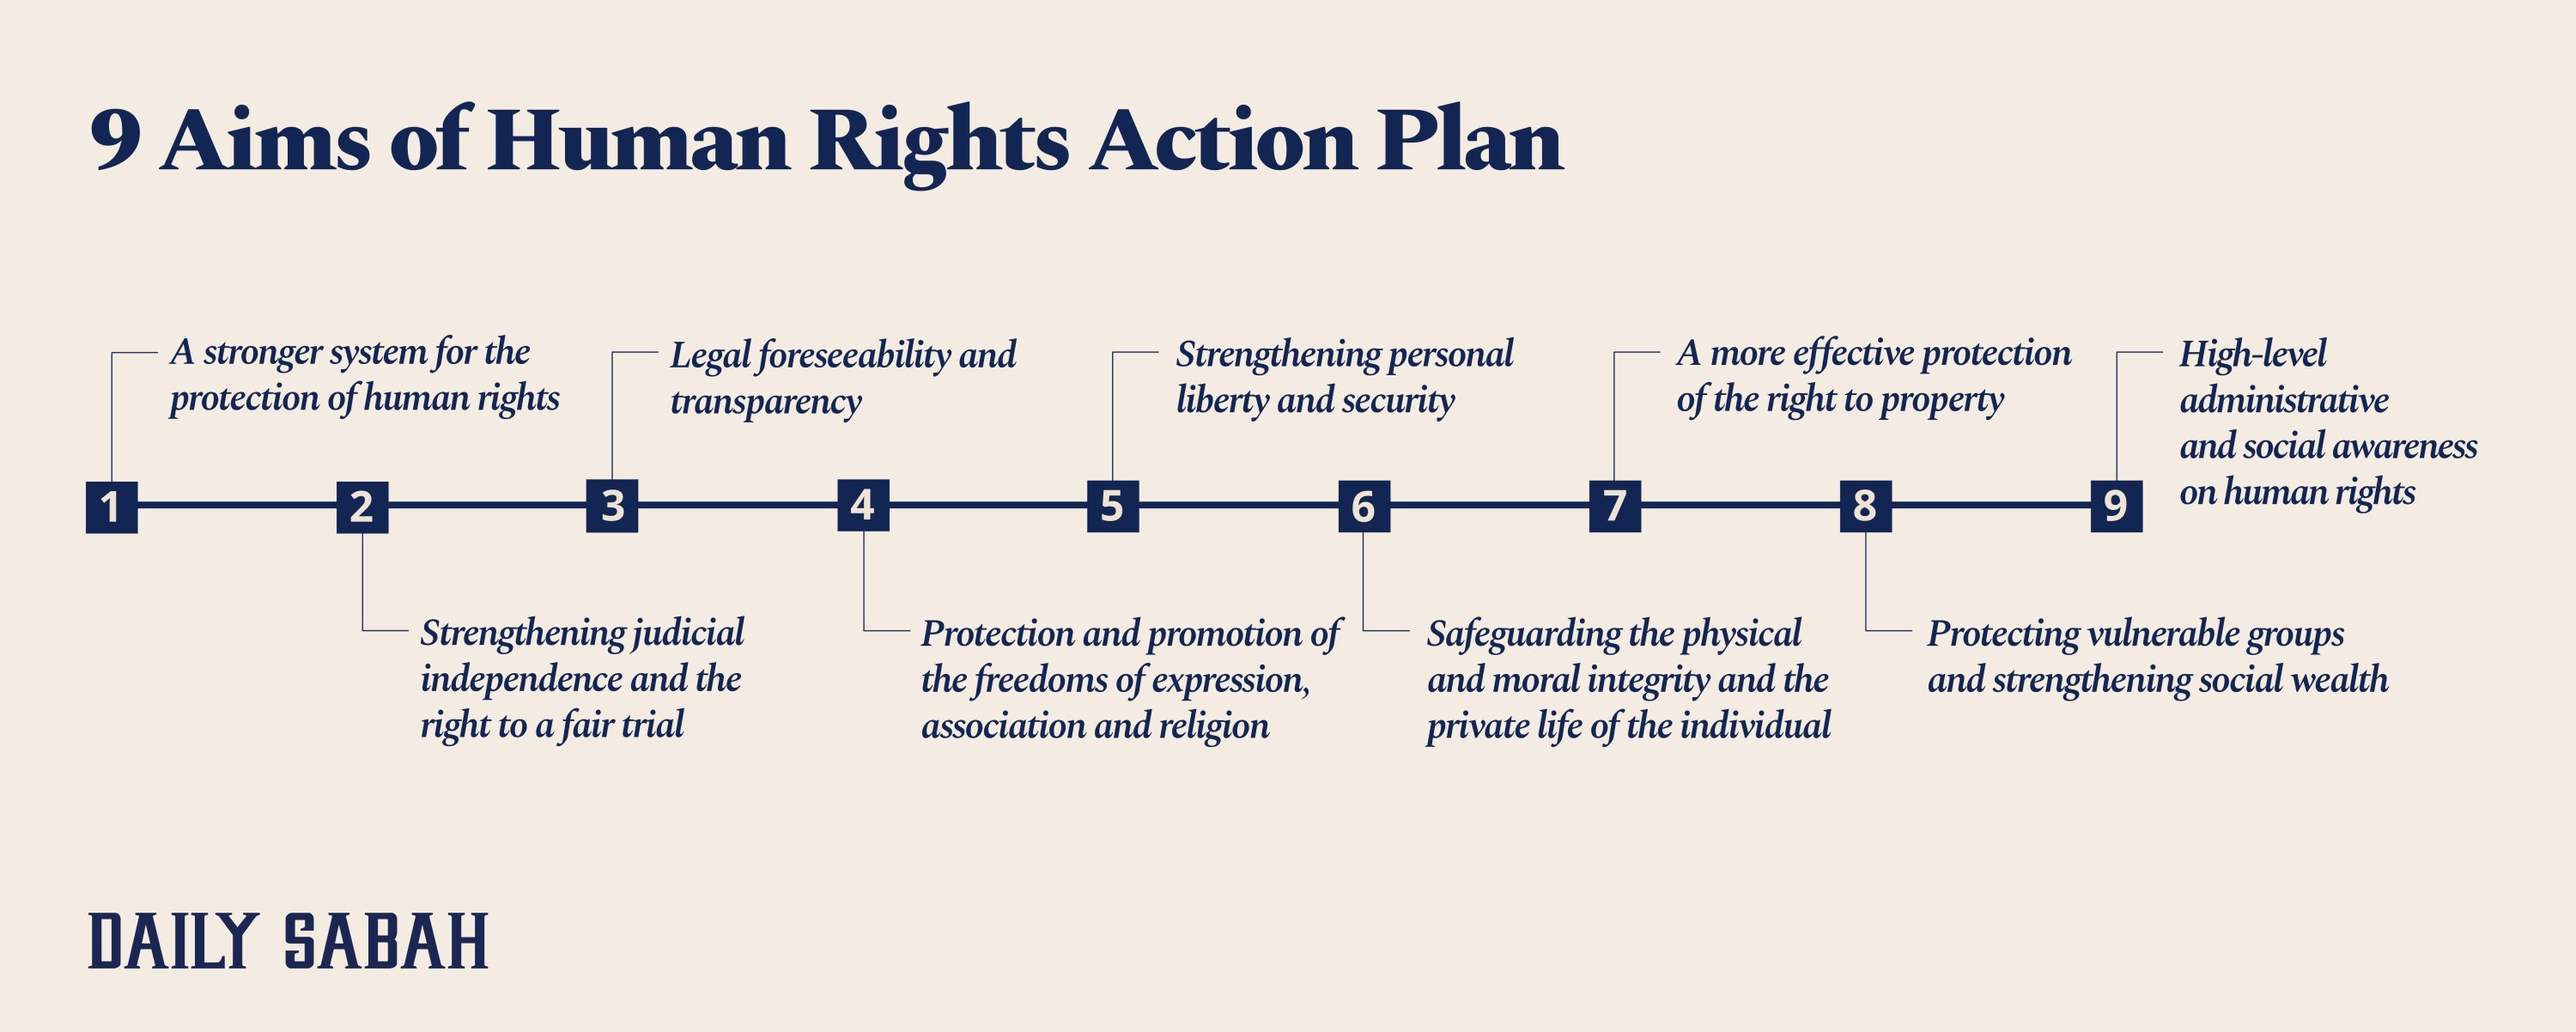 An infographic of the aims of the Human Rights Action Plan. (Infographic by Asene Asanova)